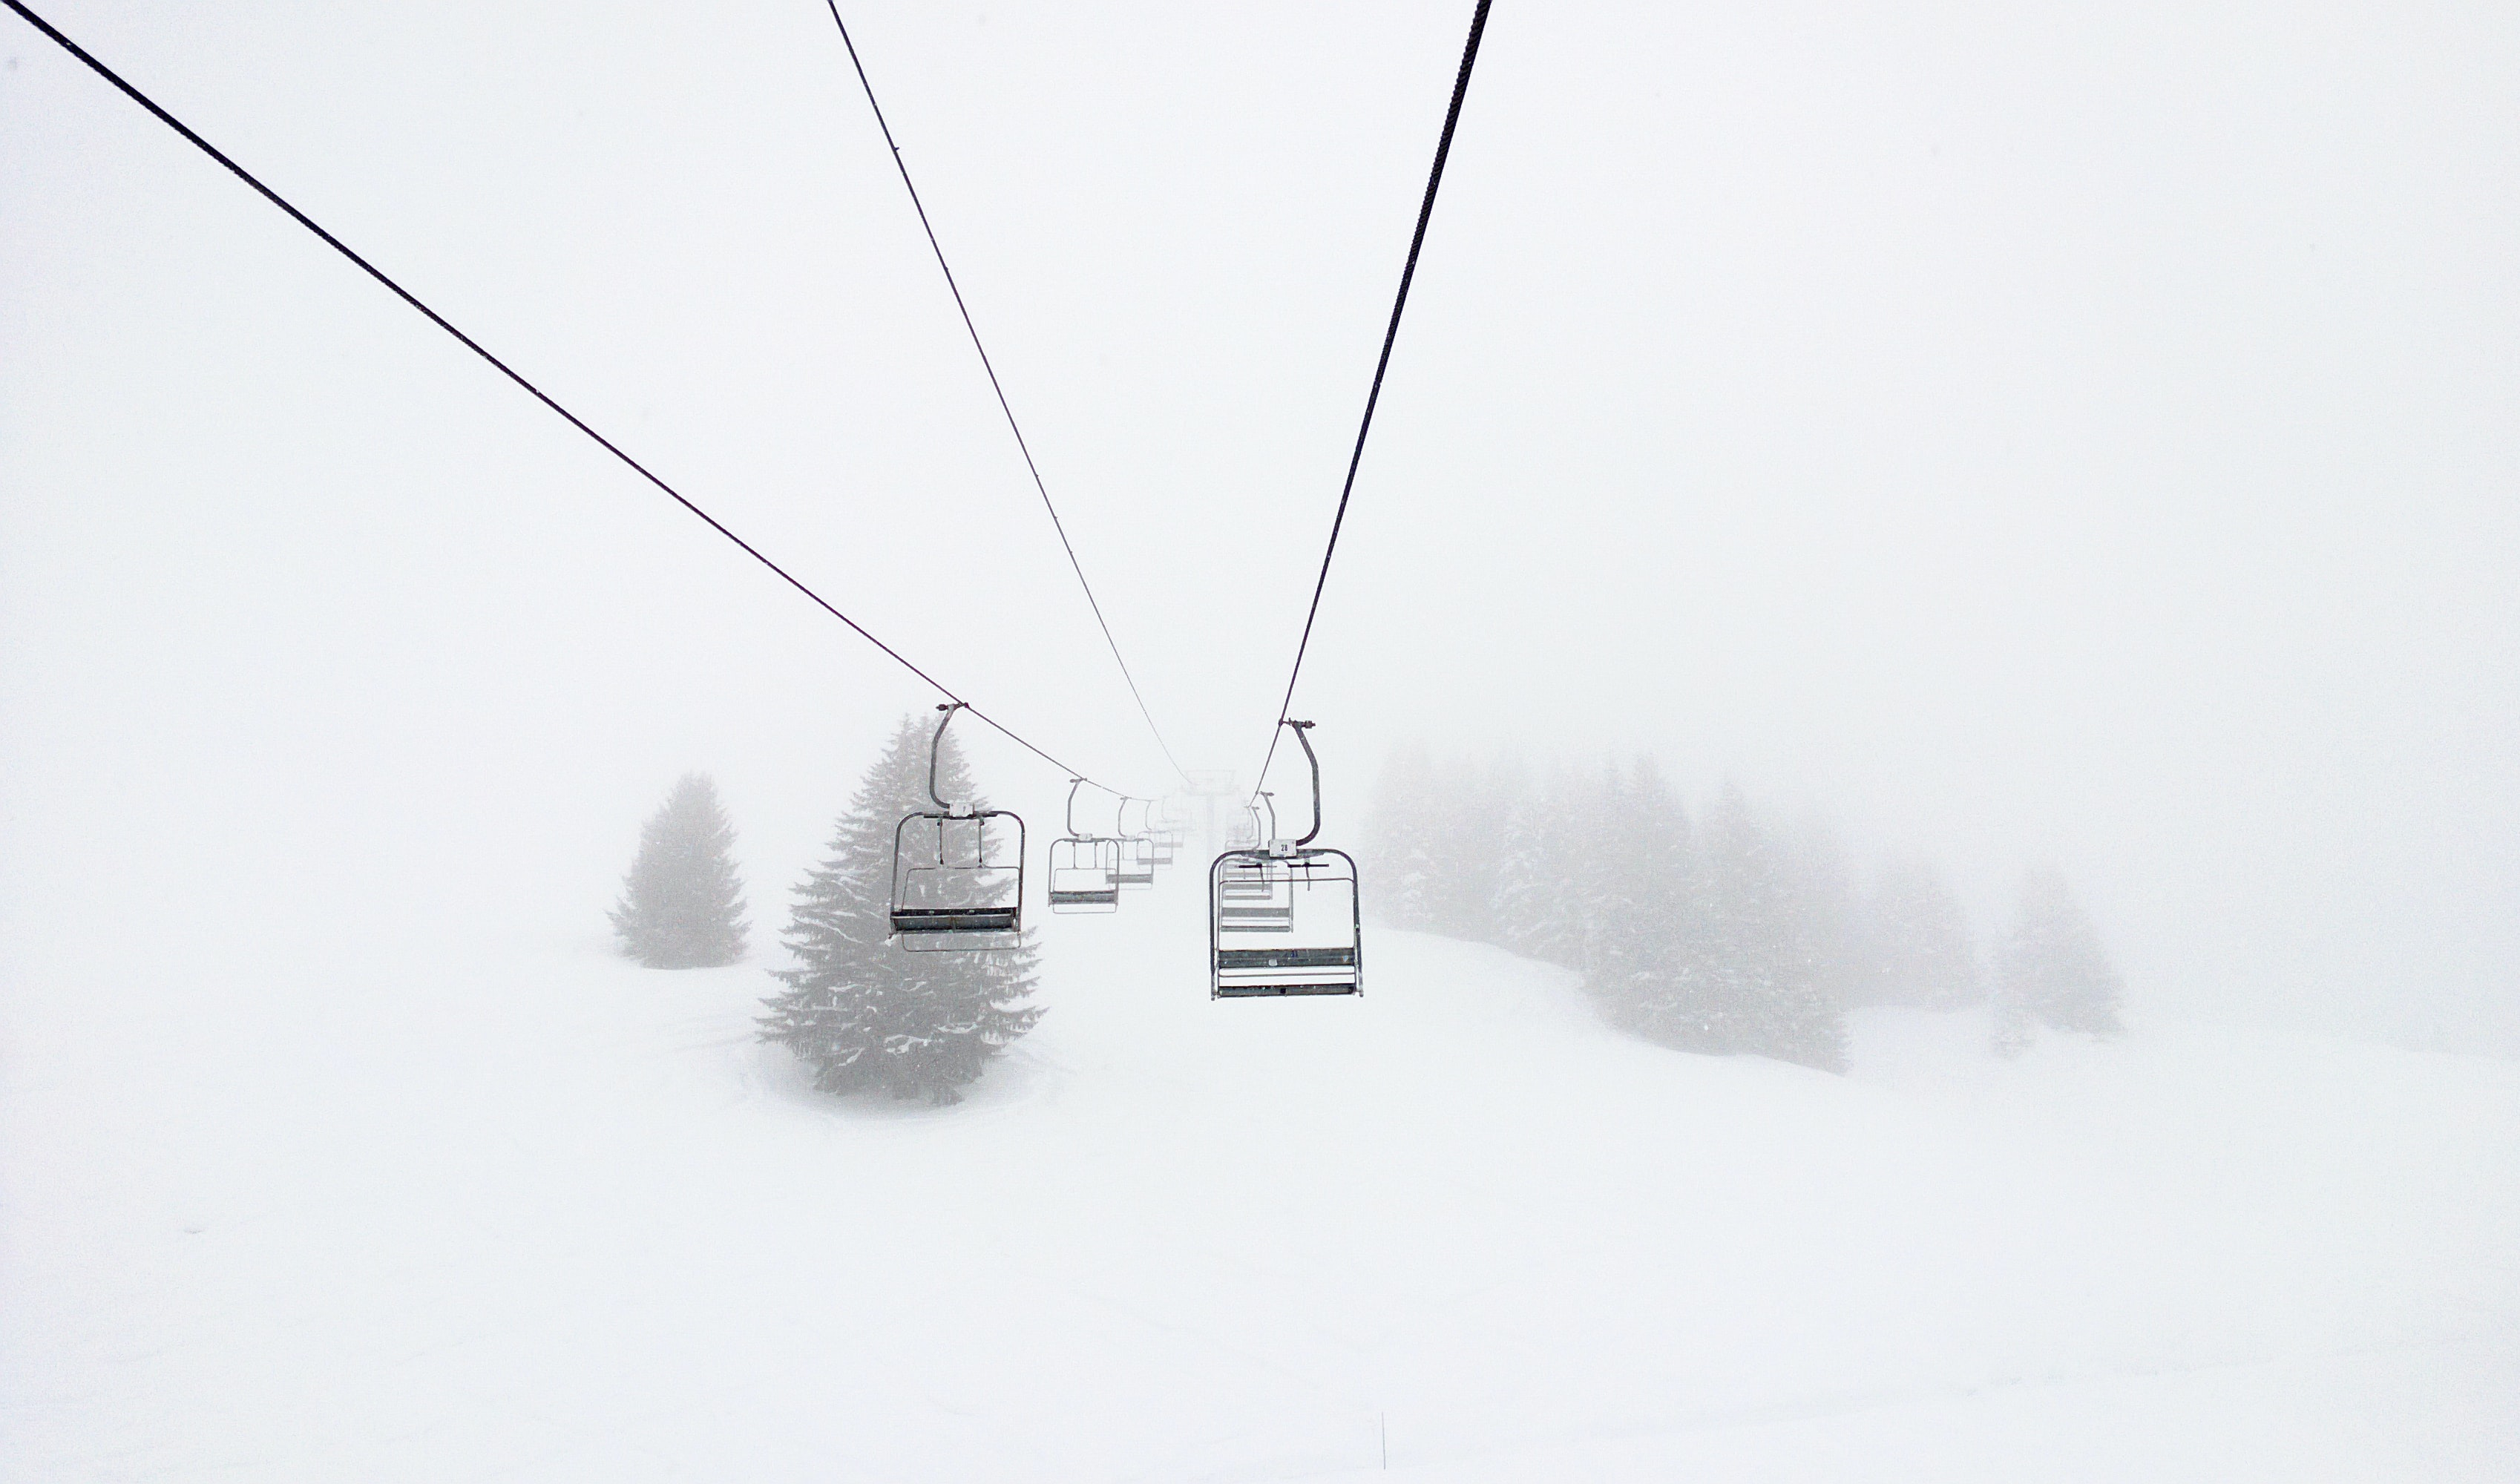 Chairlifts on a snowy ski slope in Morillon